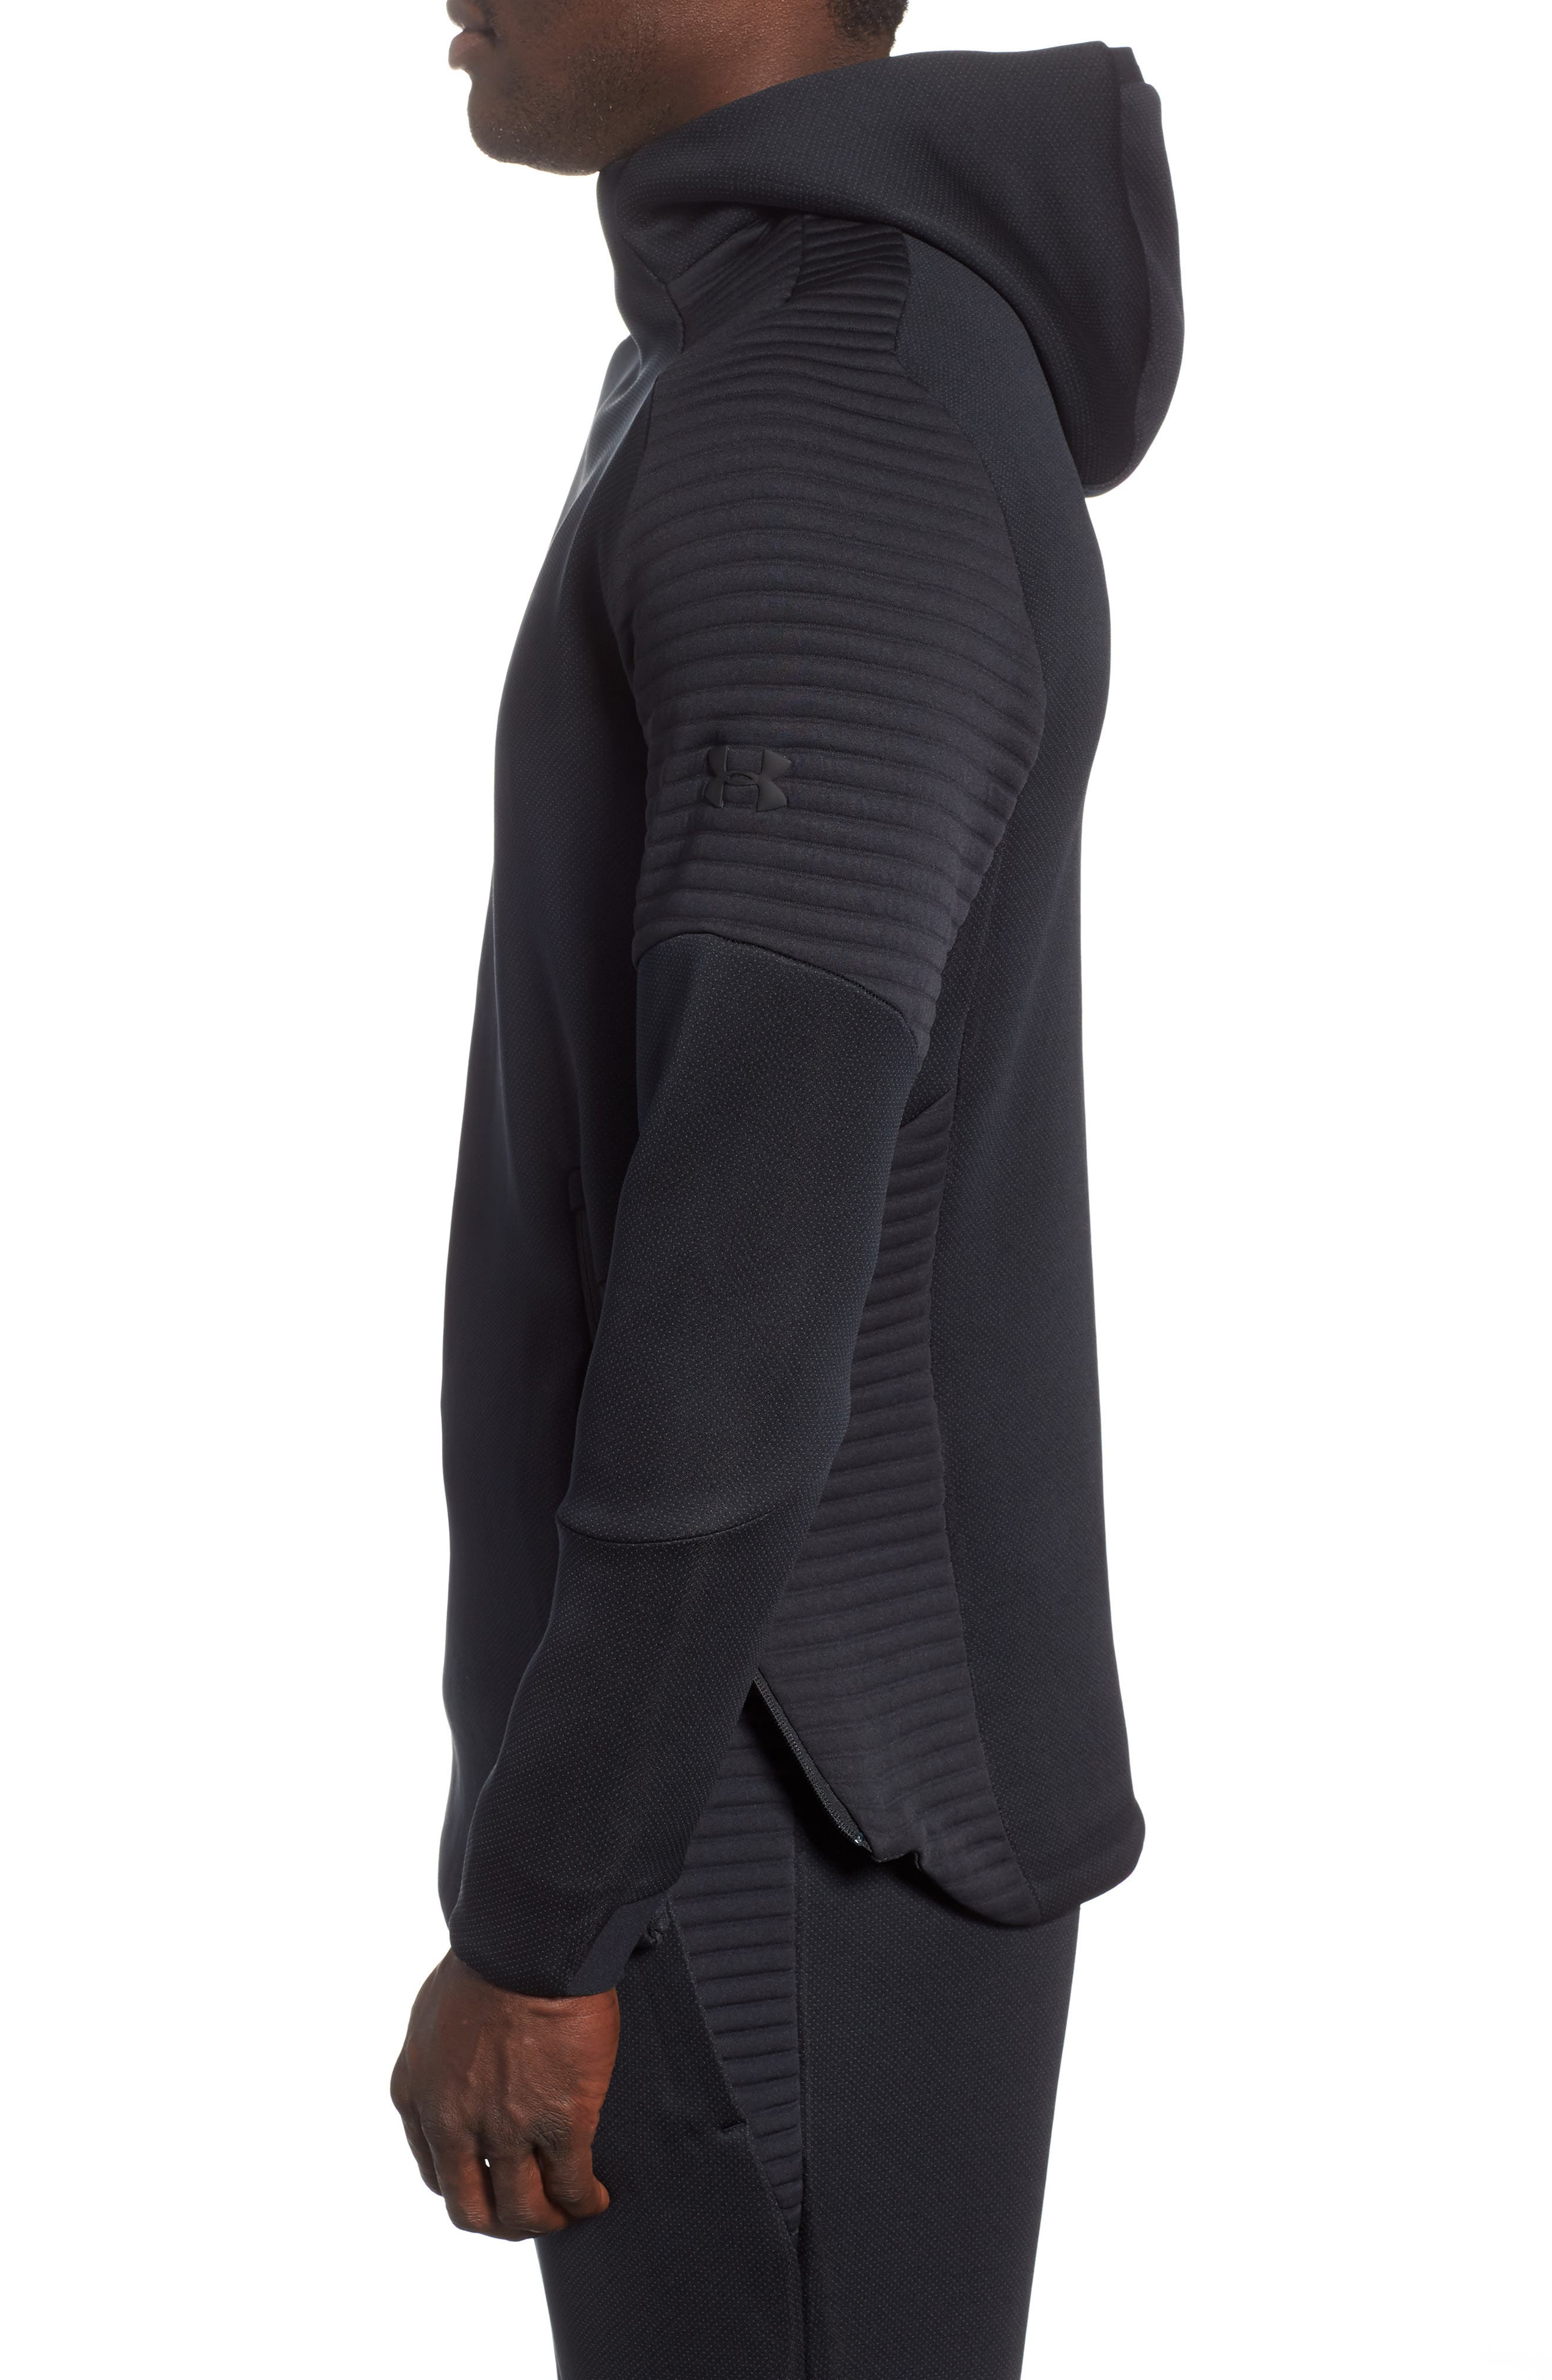 Unstoppable /MOVE Hoodie,                             Alternate thumbnail 3, color,                             BLACK/ CHARCOAL/ BLACK